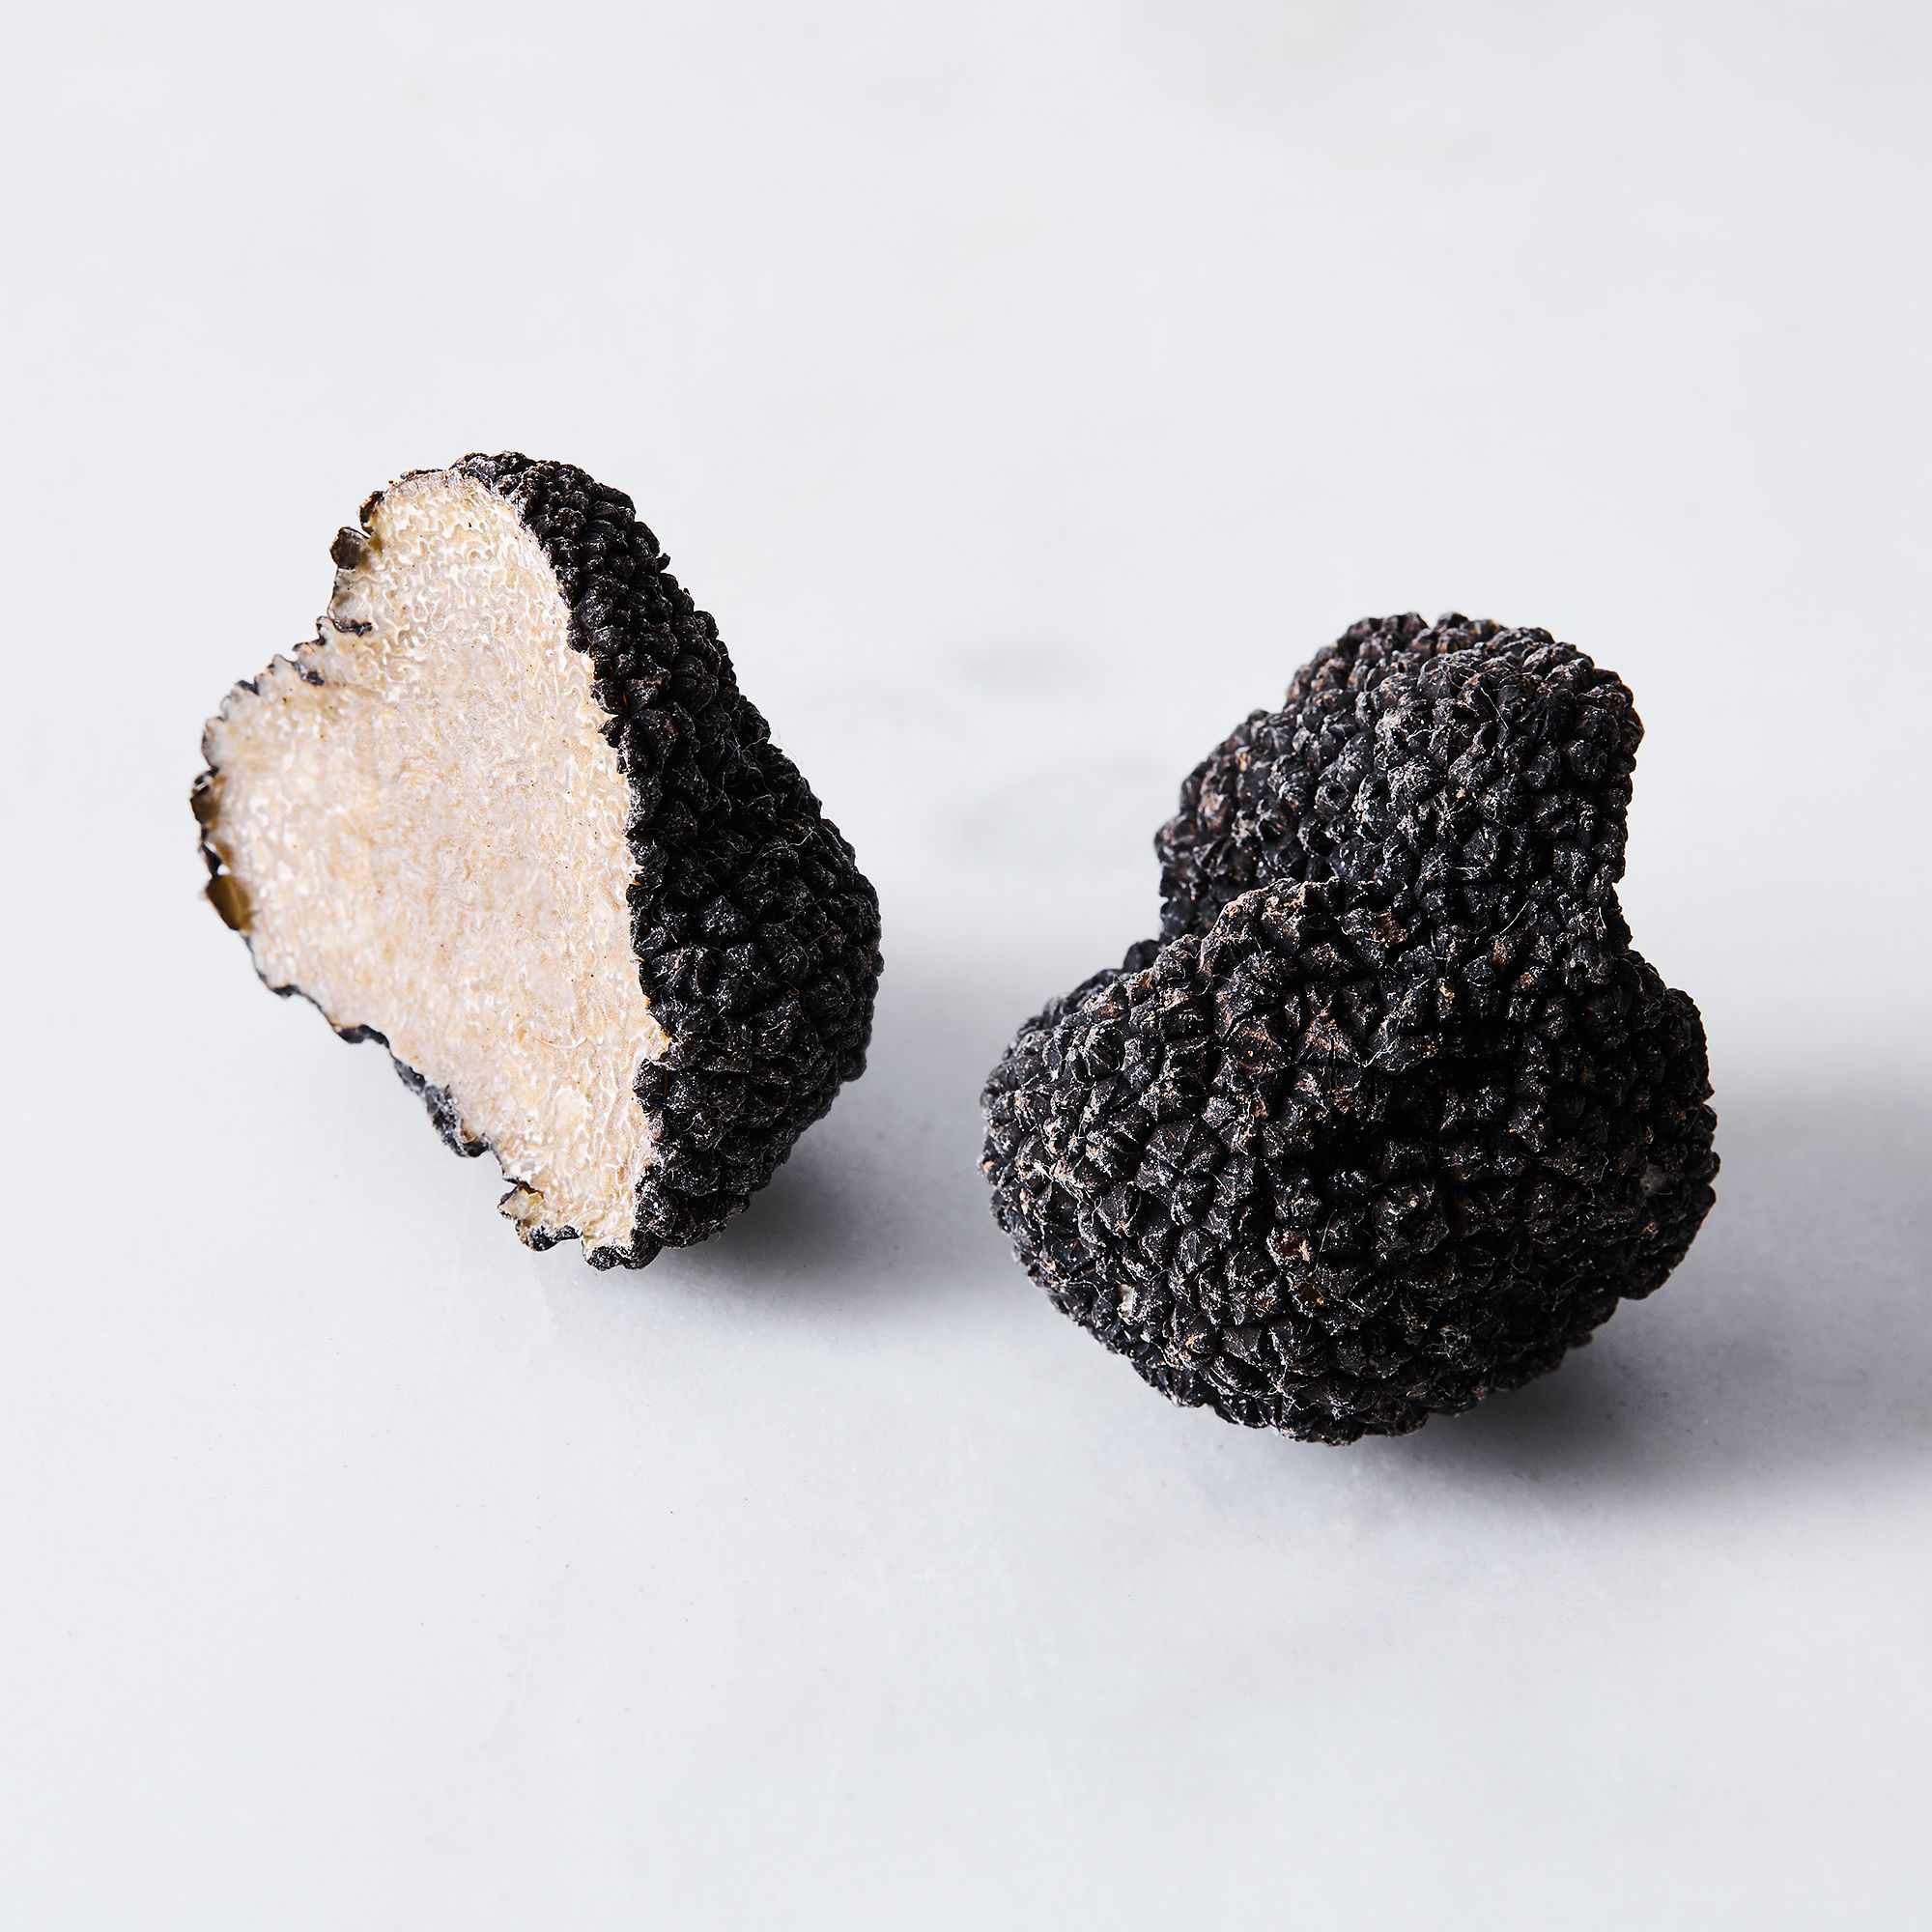 truffles by Hailey Gonzalez